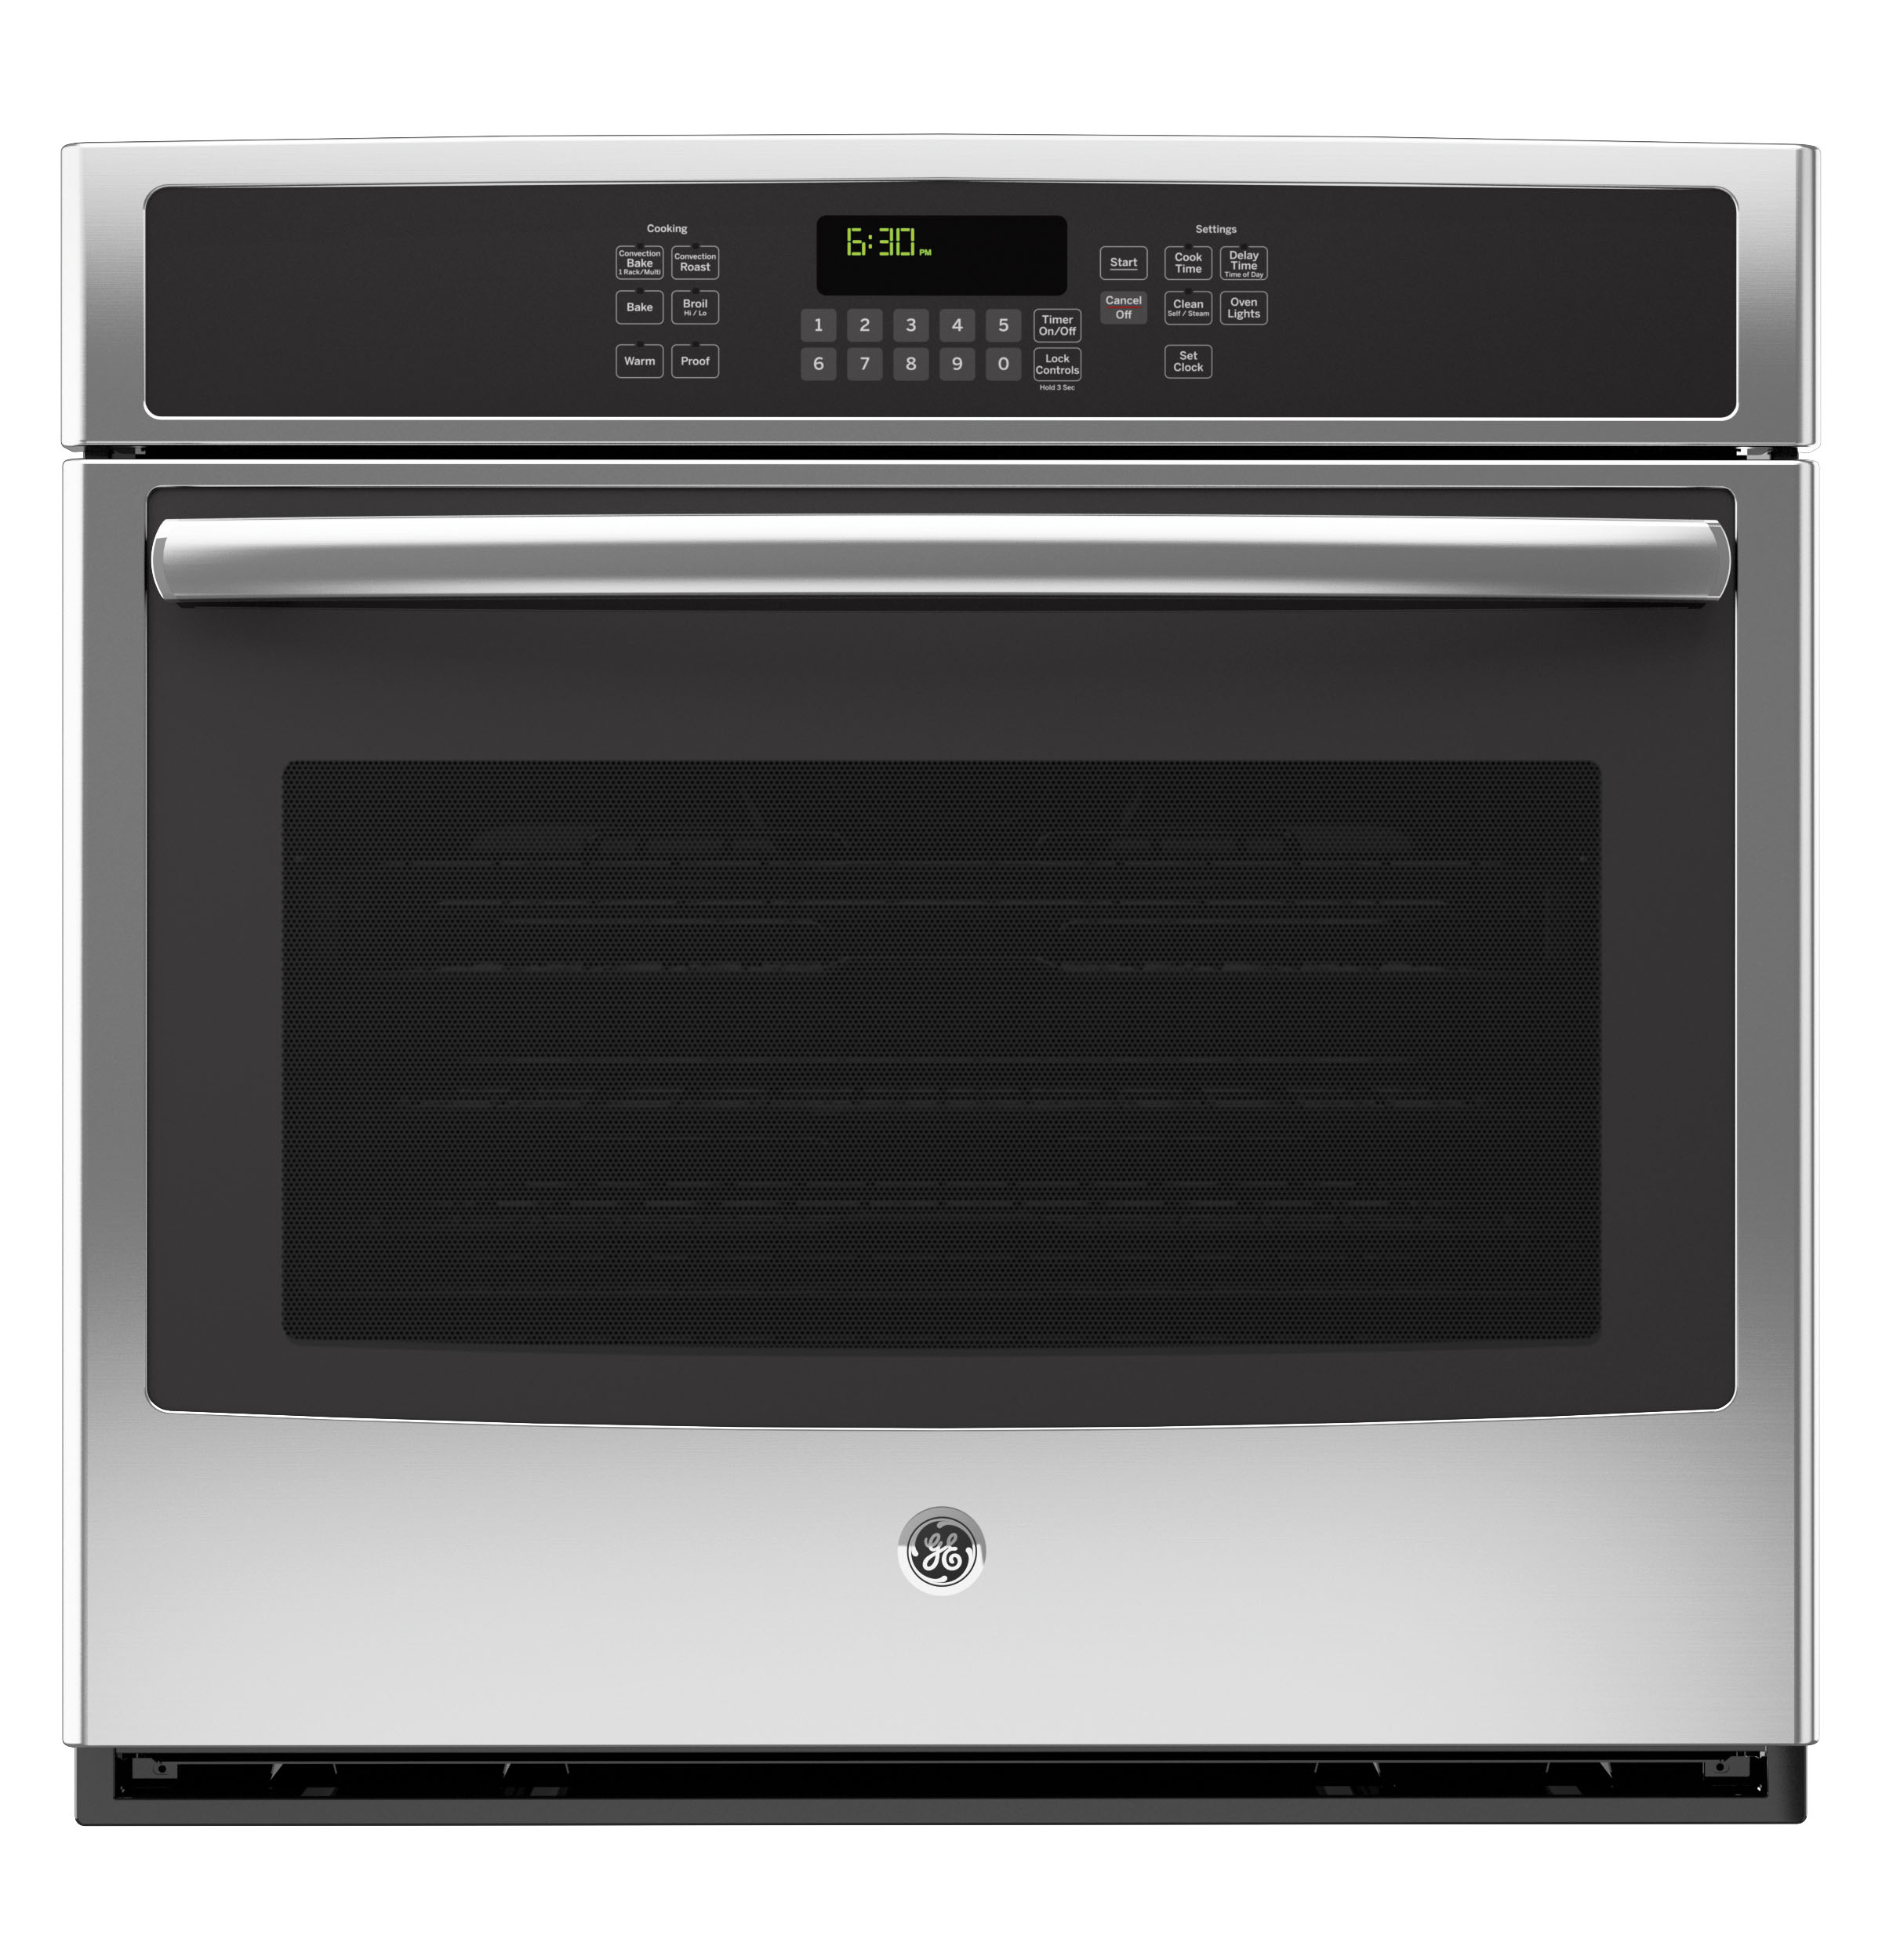 Ge Jt5000sfss 30 Built In Single Convection Wall Oven Wire Diagram For Refrigerator Model 22 25